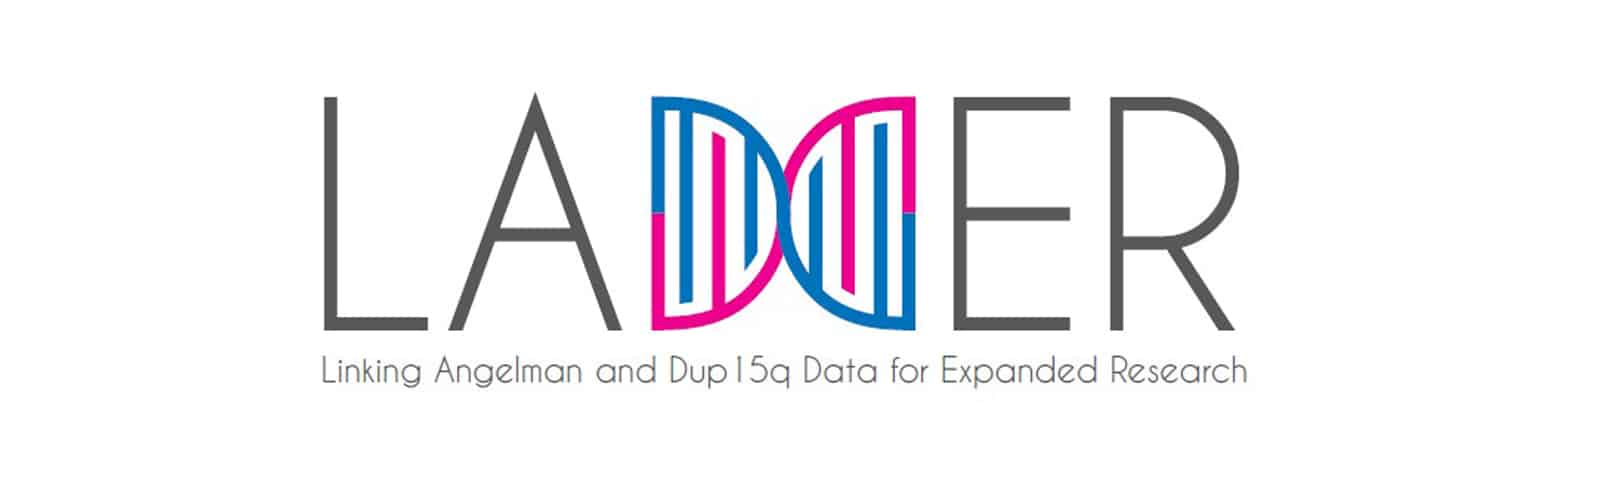 Ladder logo Linking Angelman and Dup15 Data for Expanded Research